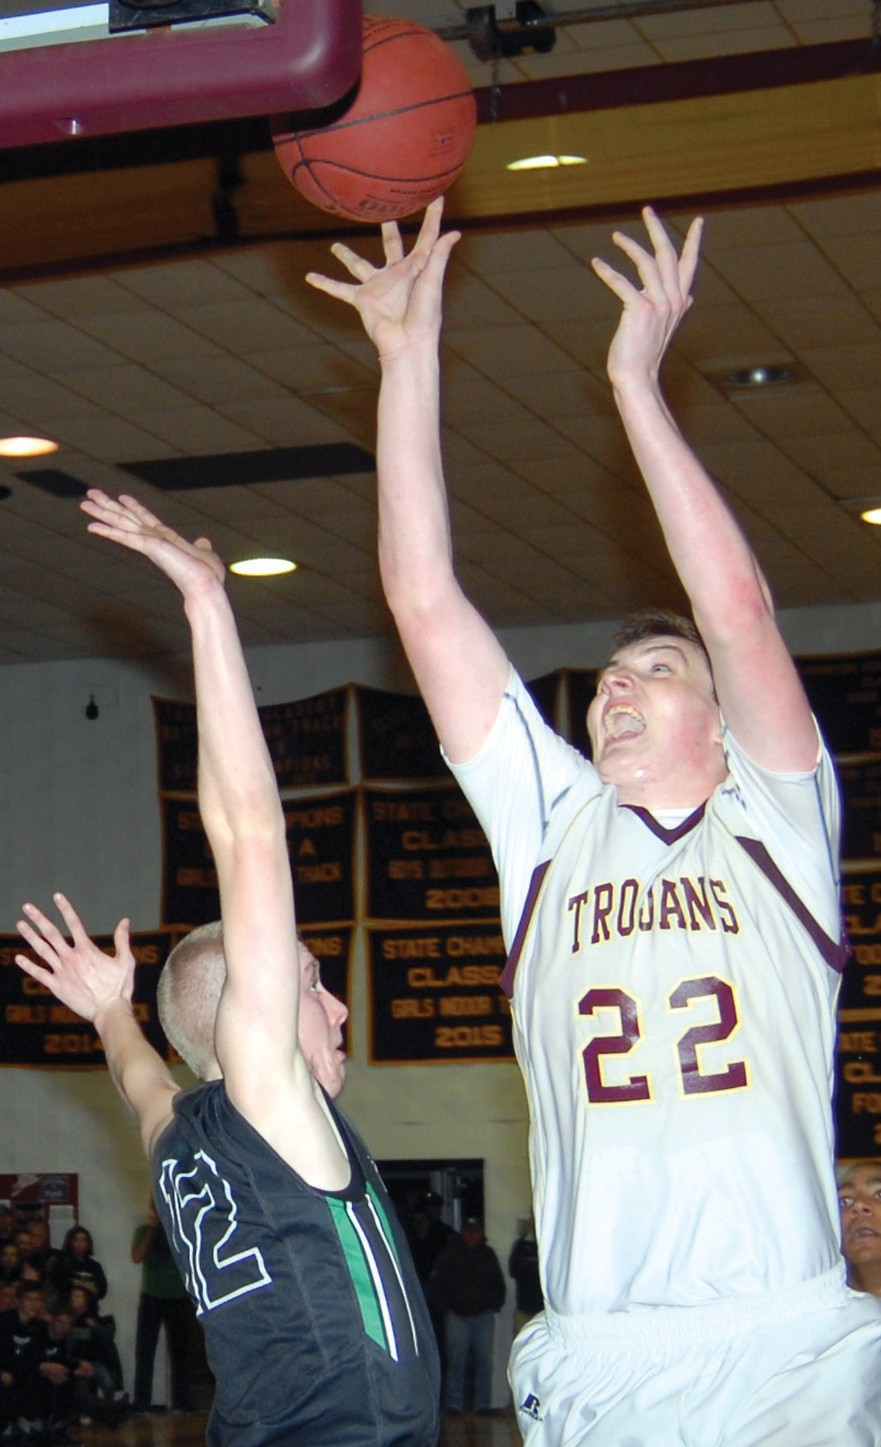 Thornton Academy's David Keohan puts up a shot during a game in January. Keohan has been named the SMAA Rookie of the Year after an impressive sophomore campaign.